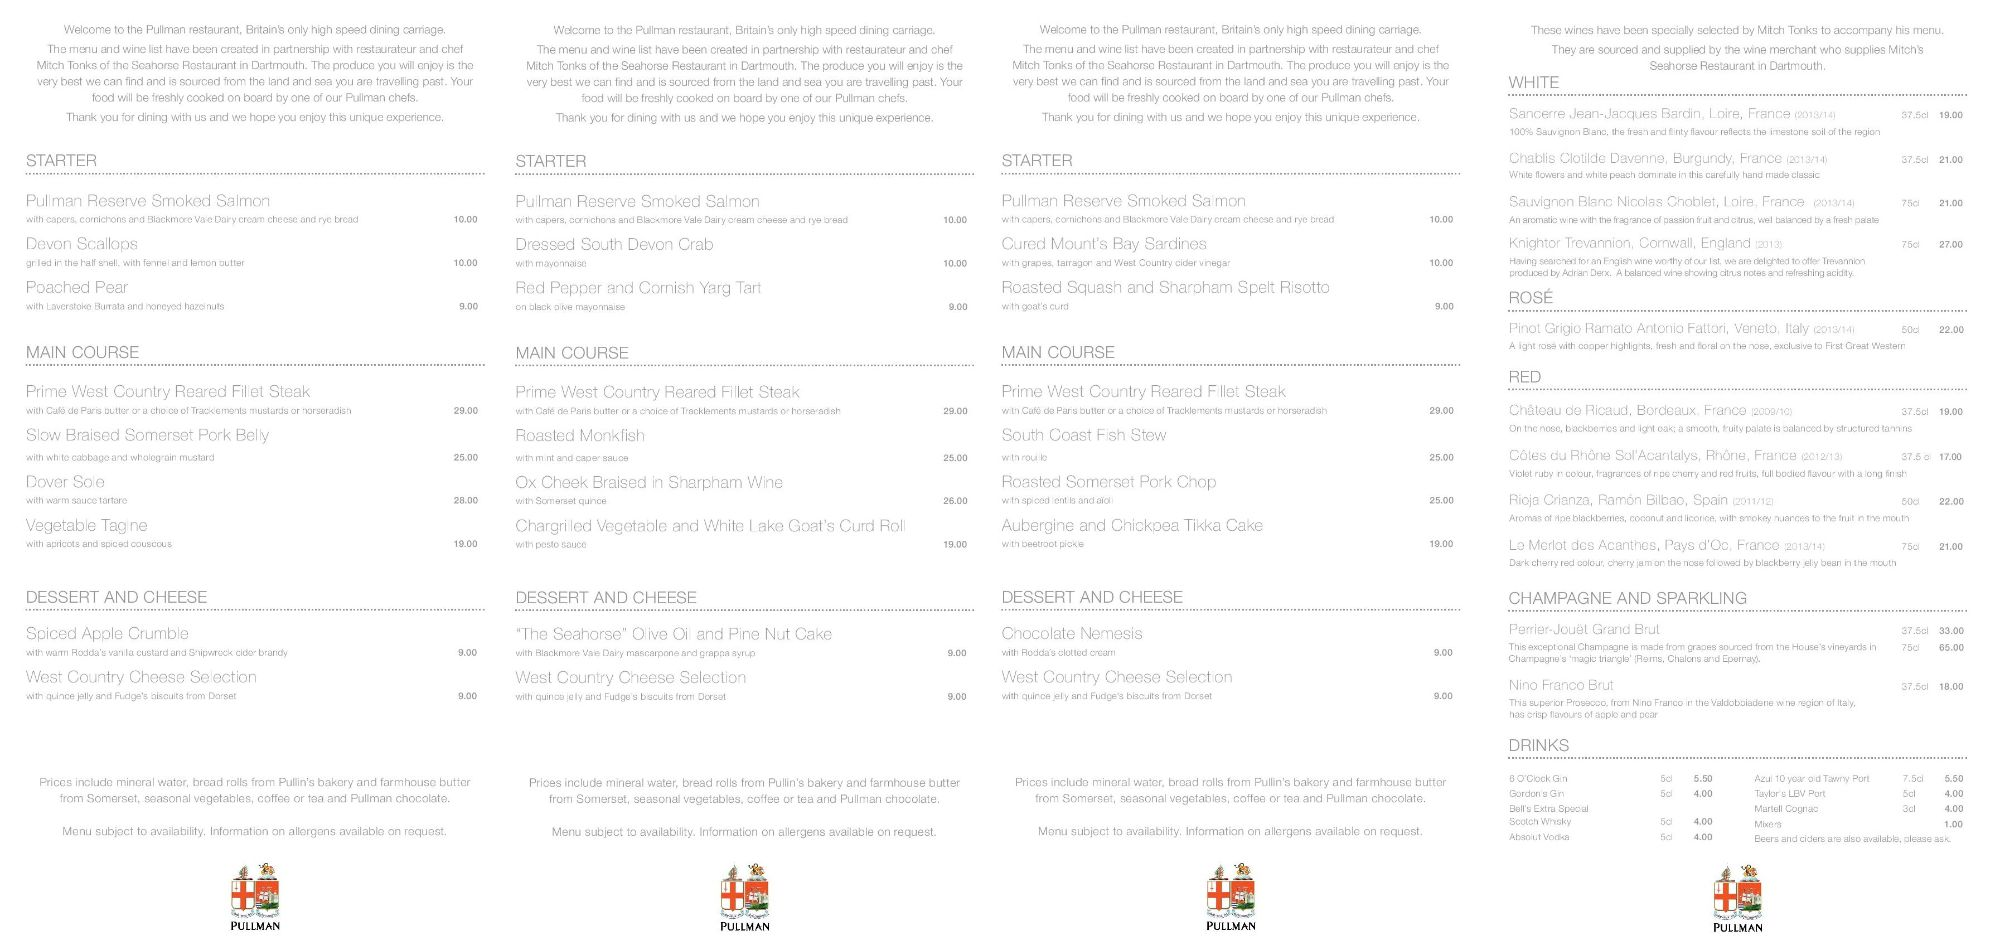 Image showing a sample of the First Great Western Pullman dining menu circa 2015.